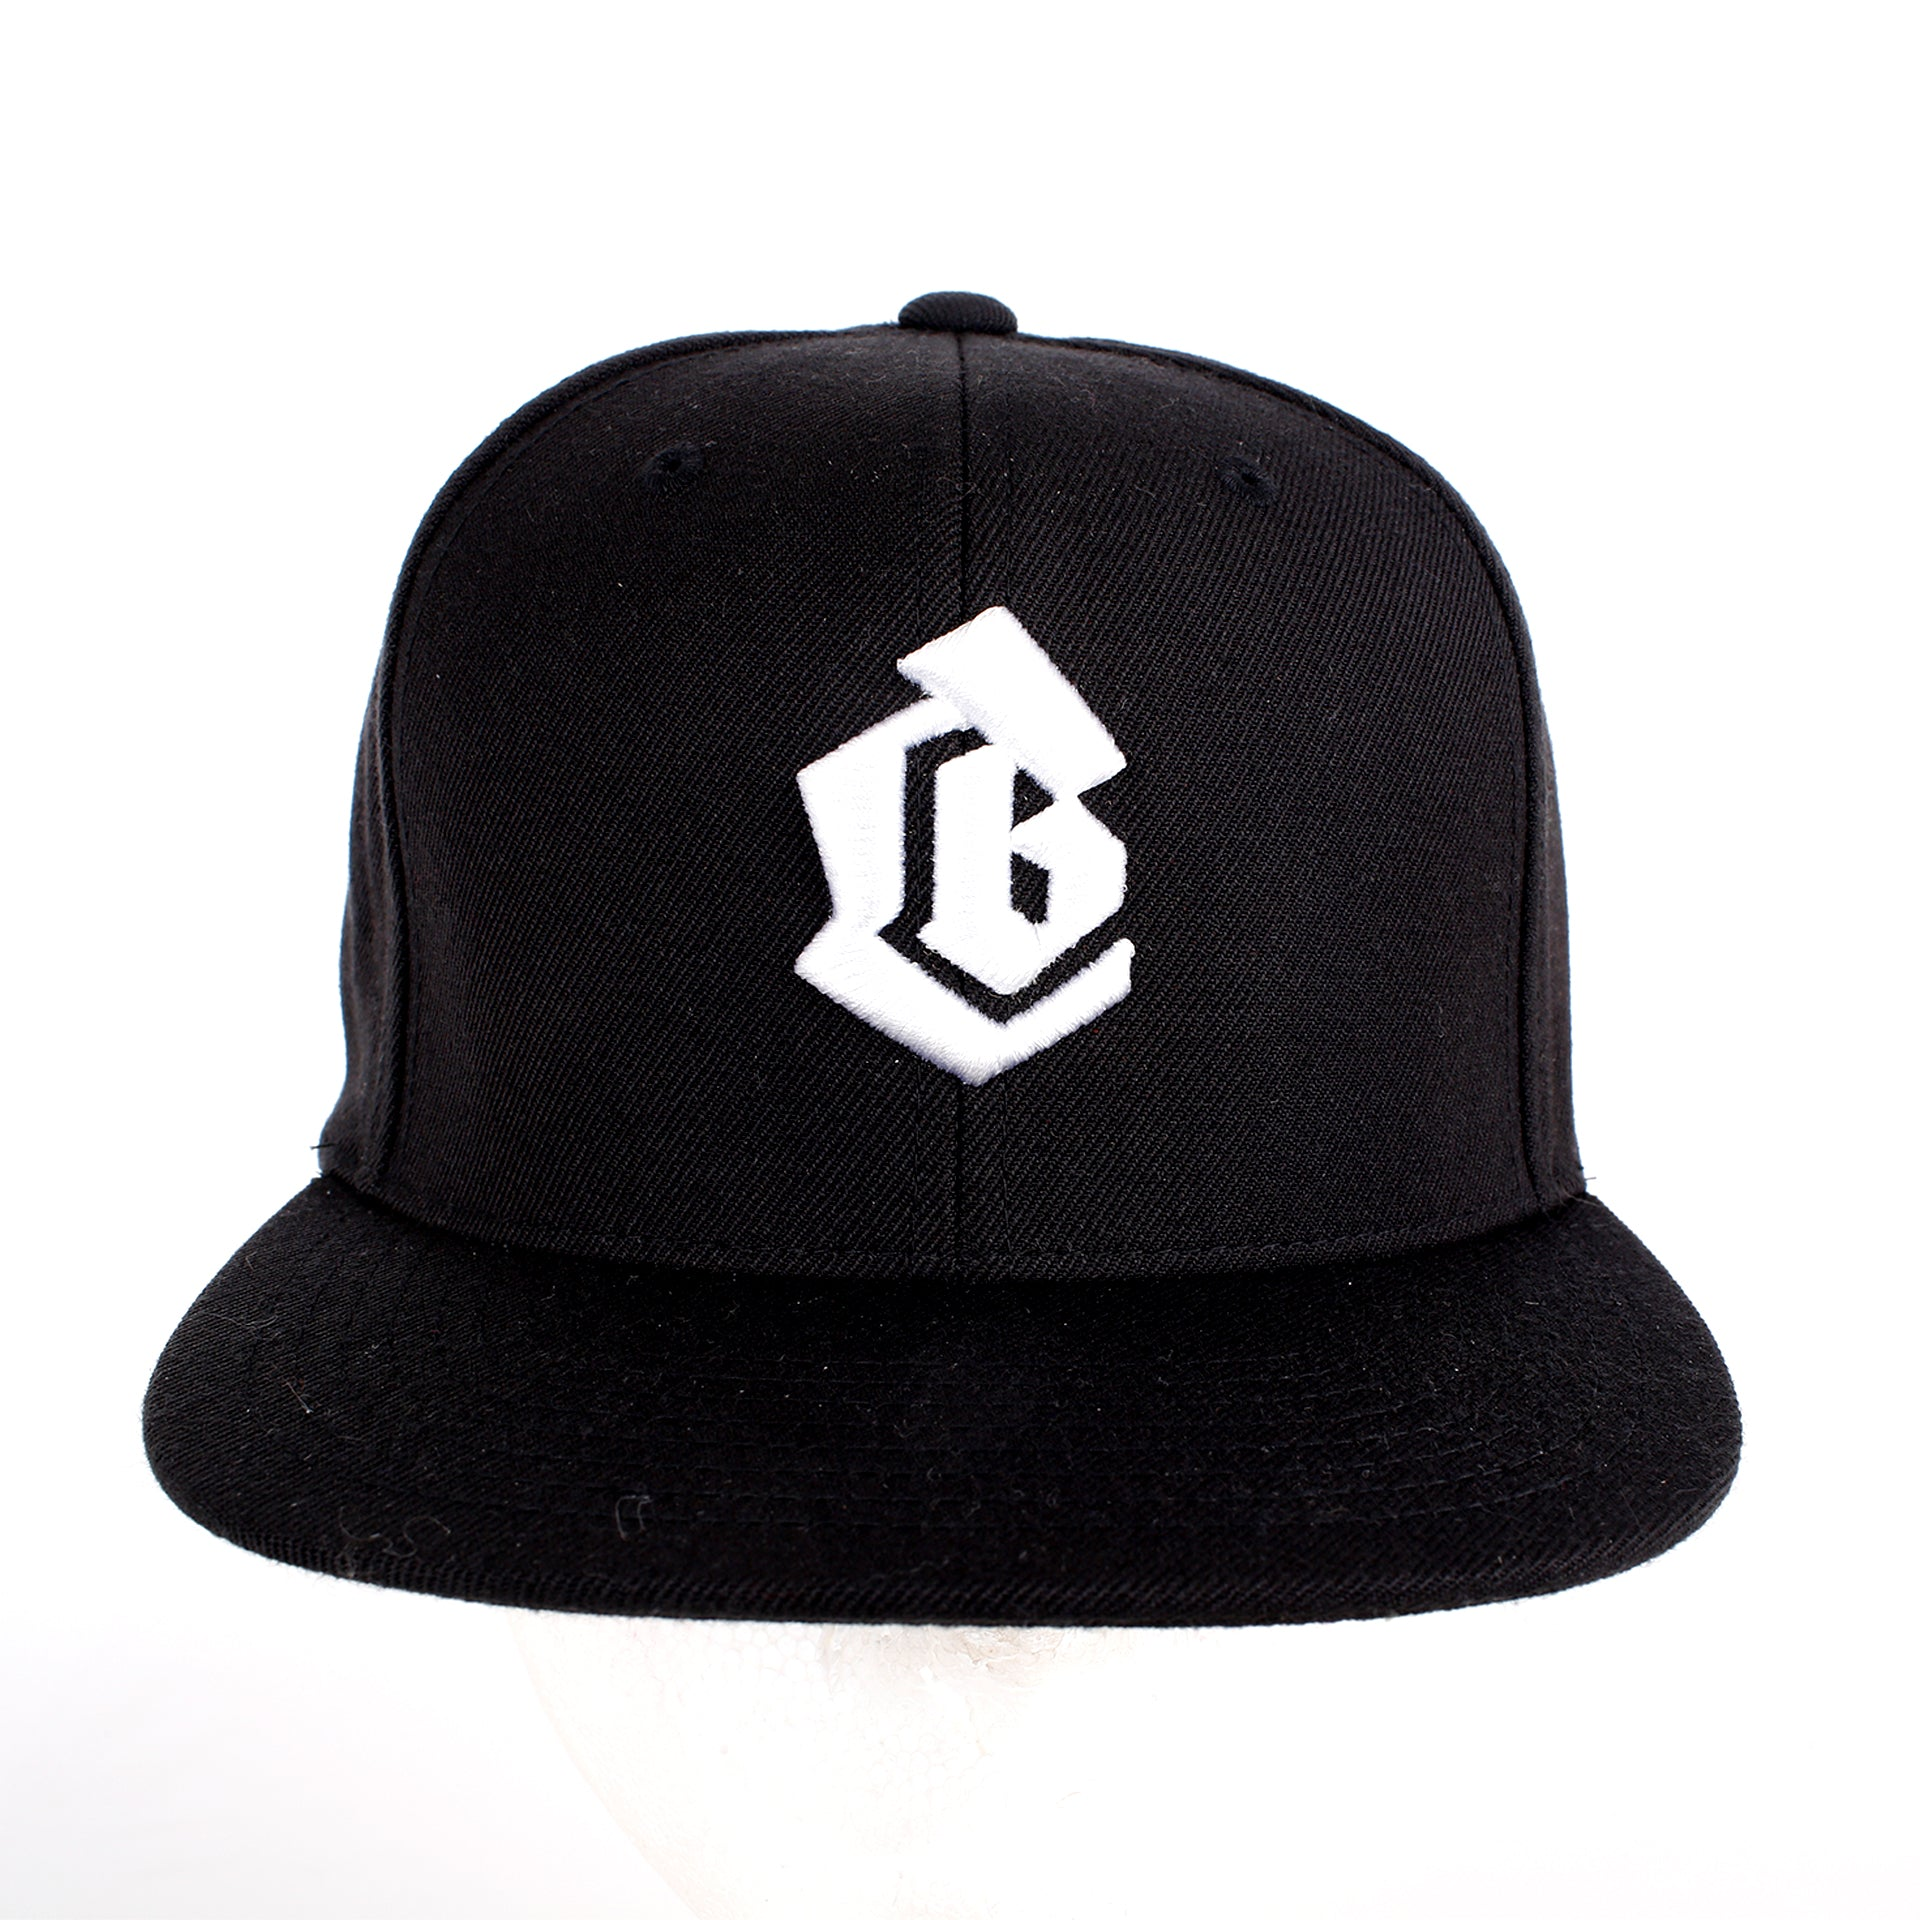 COLLECTIVE BIKES LOGO SNAPBACK - Collective Bikes